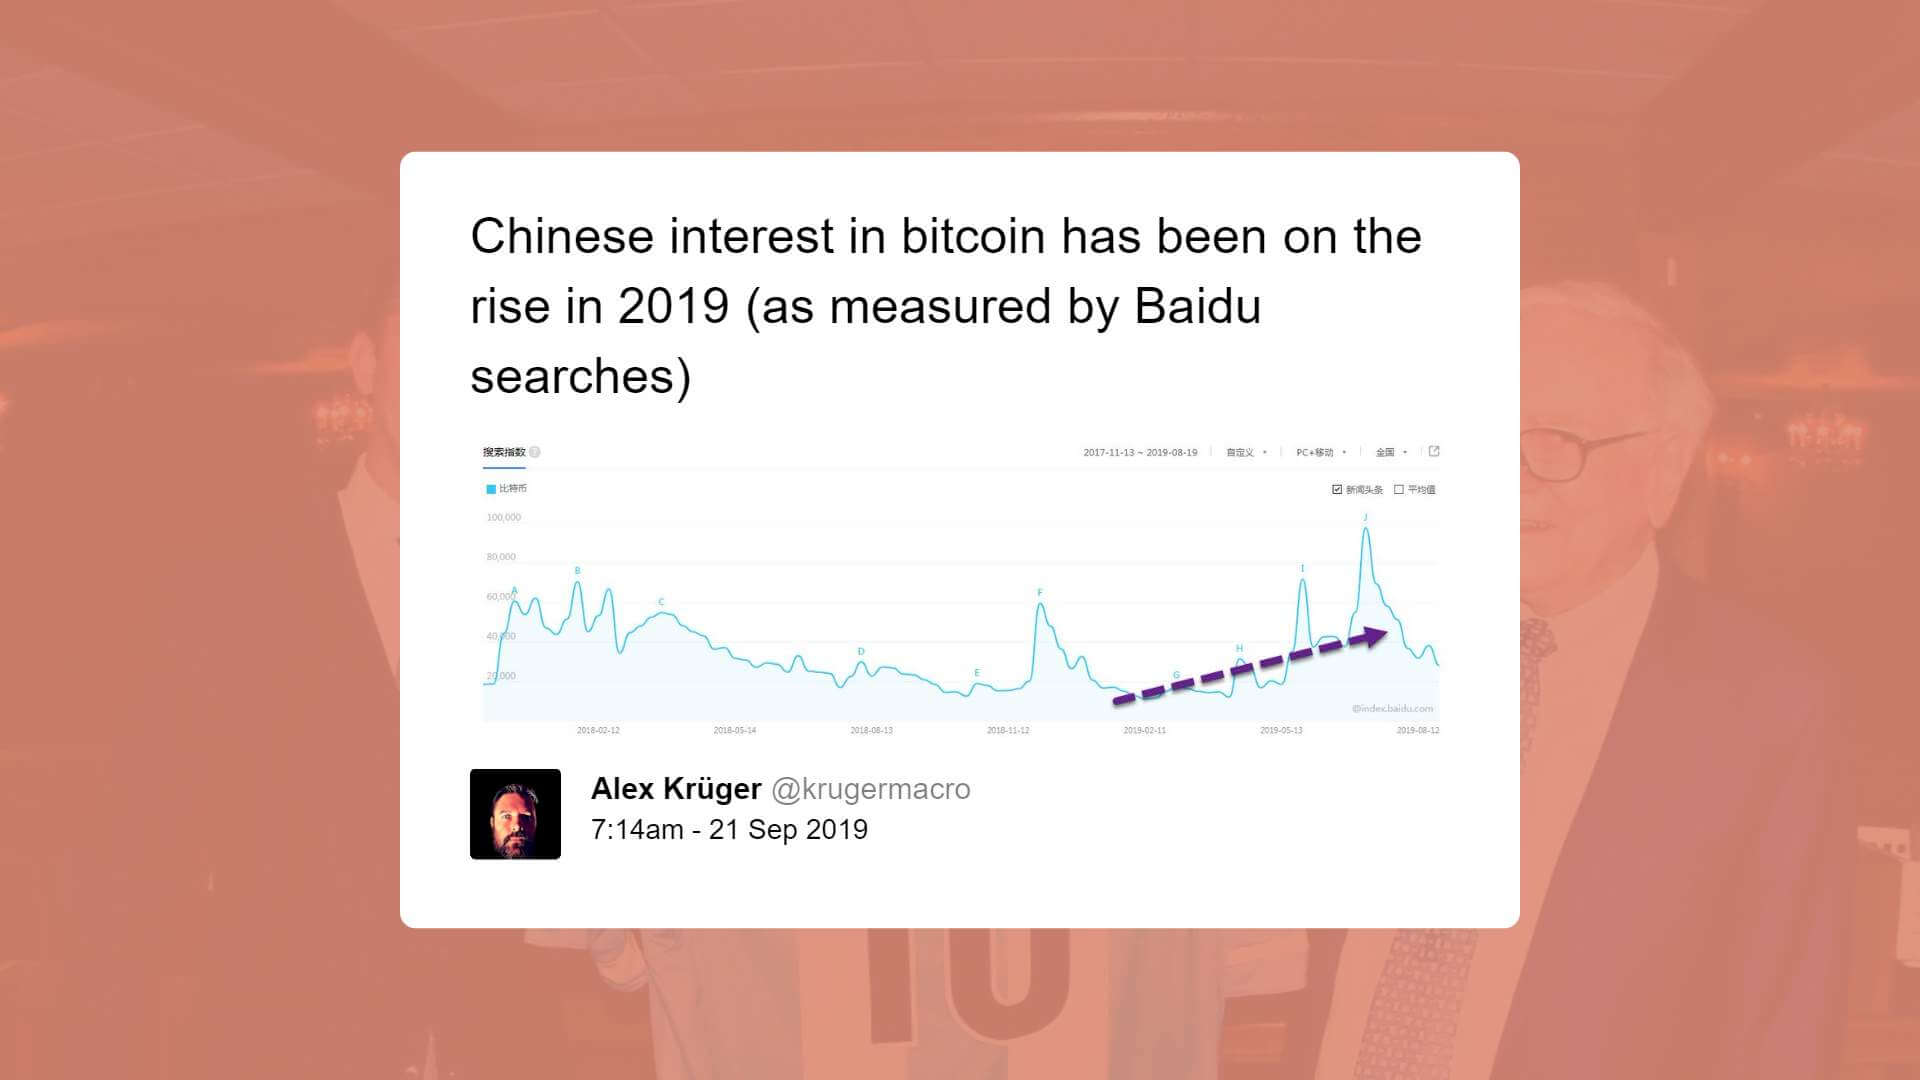 The popularity of bitcoin as a keyword on local search engies in China surged in 2019